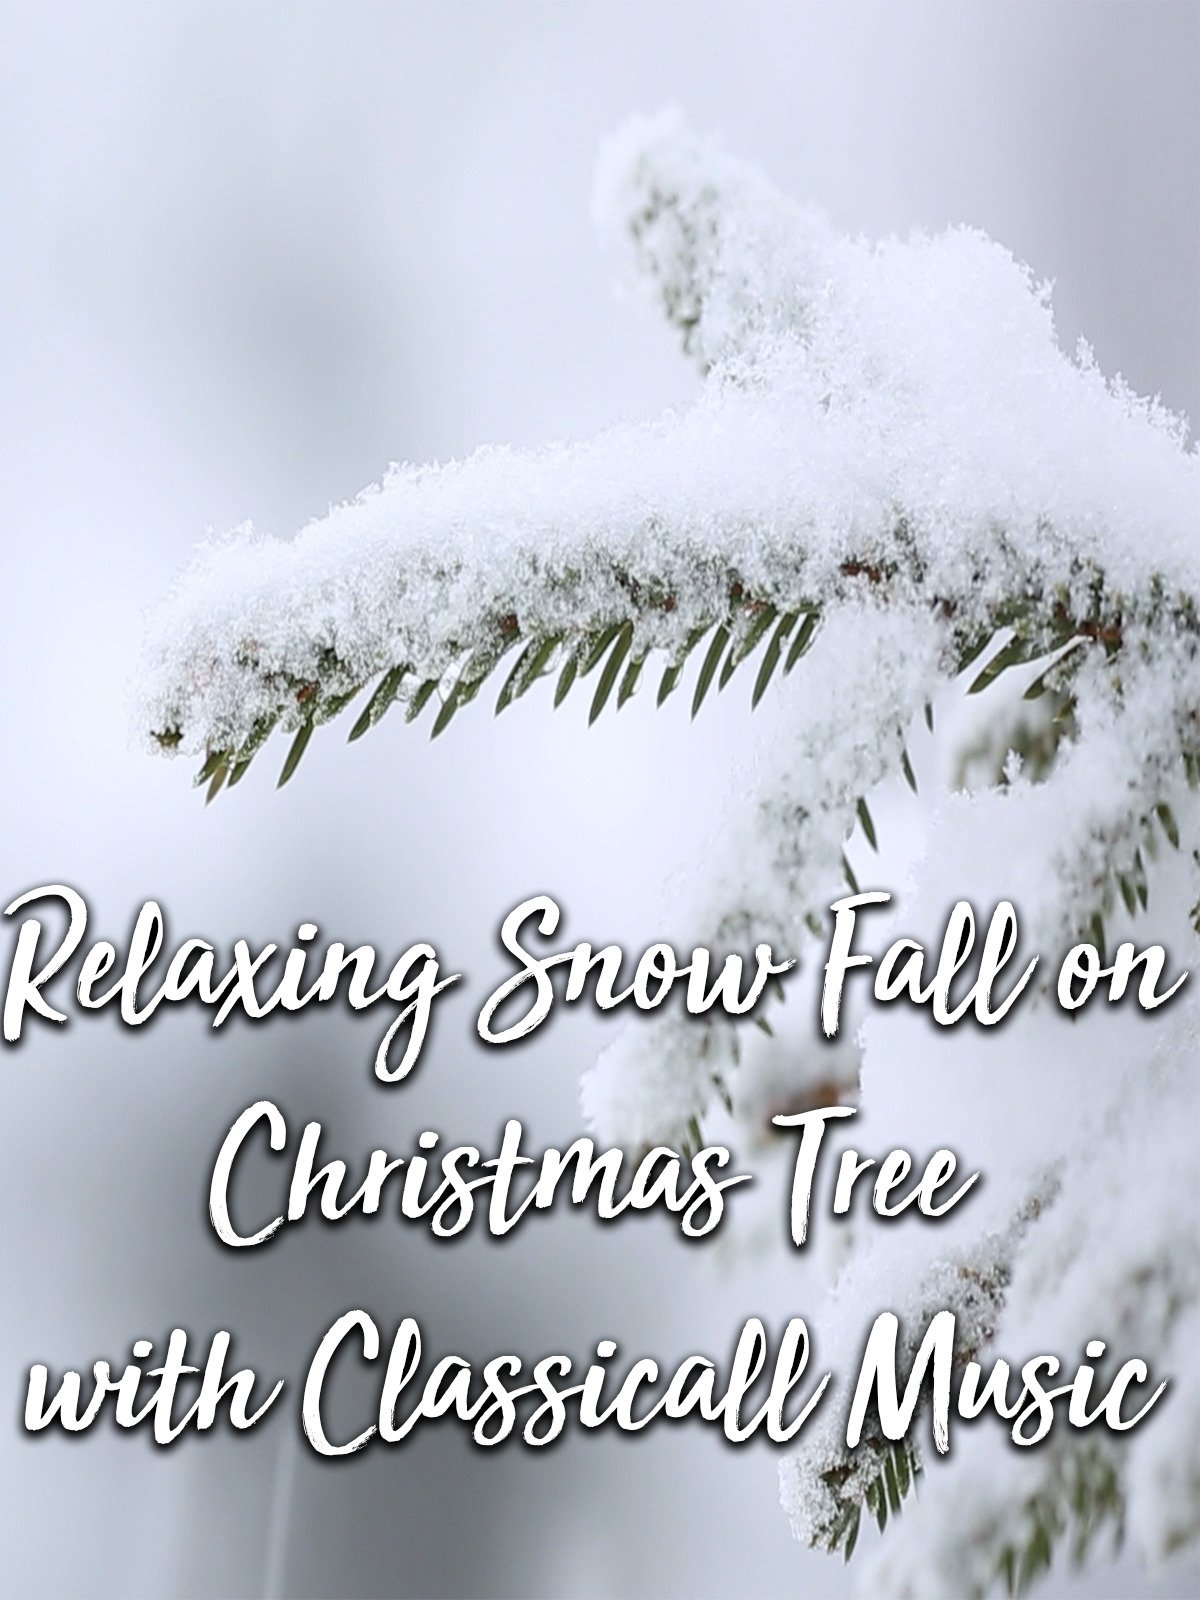 Relaxing Snow Fall on Christmas Tree with Classical Music